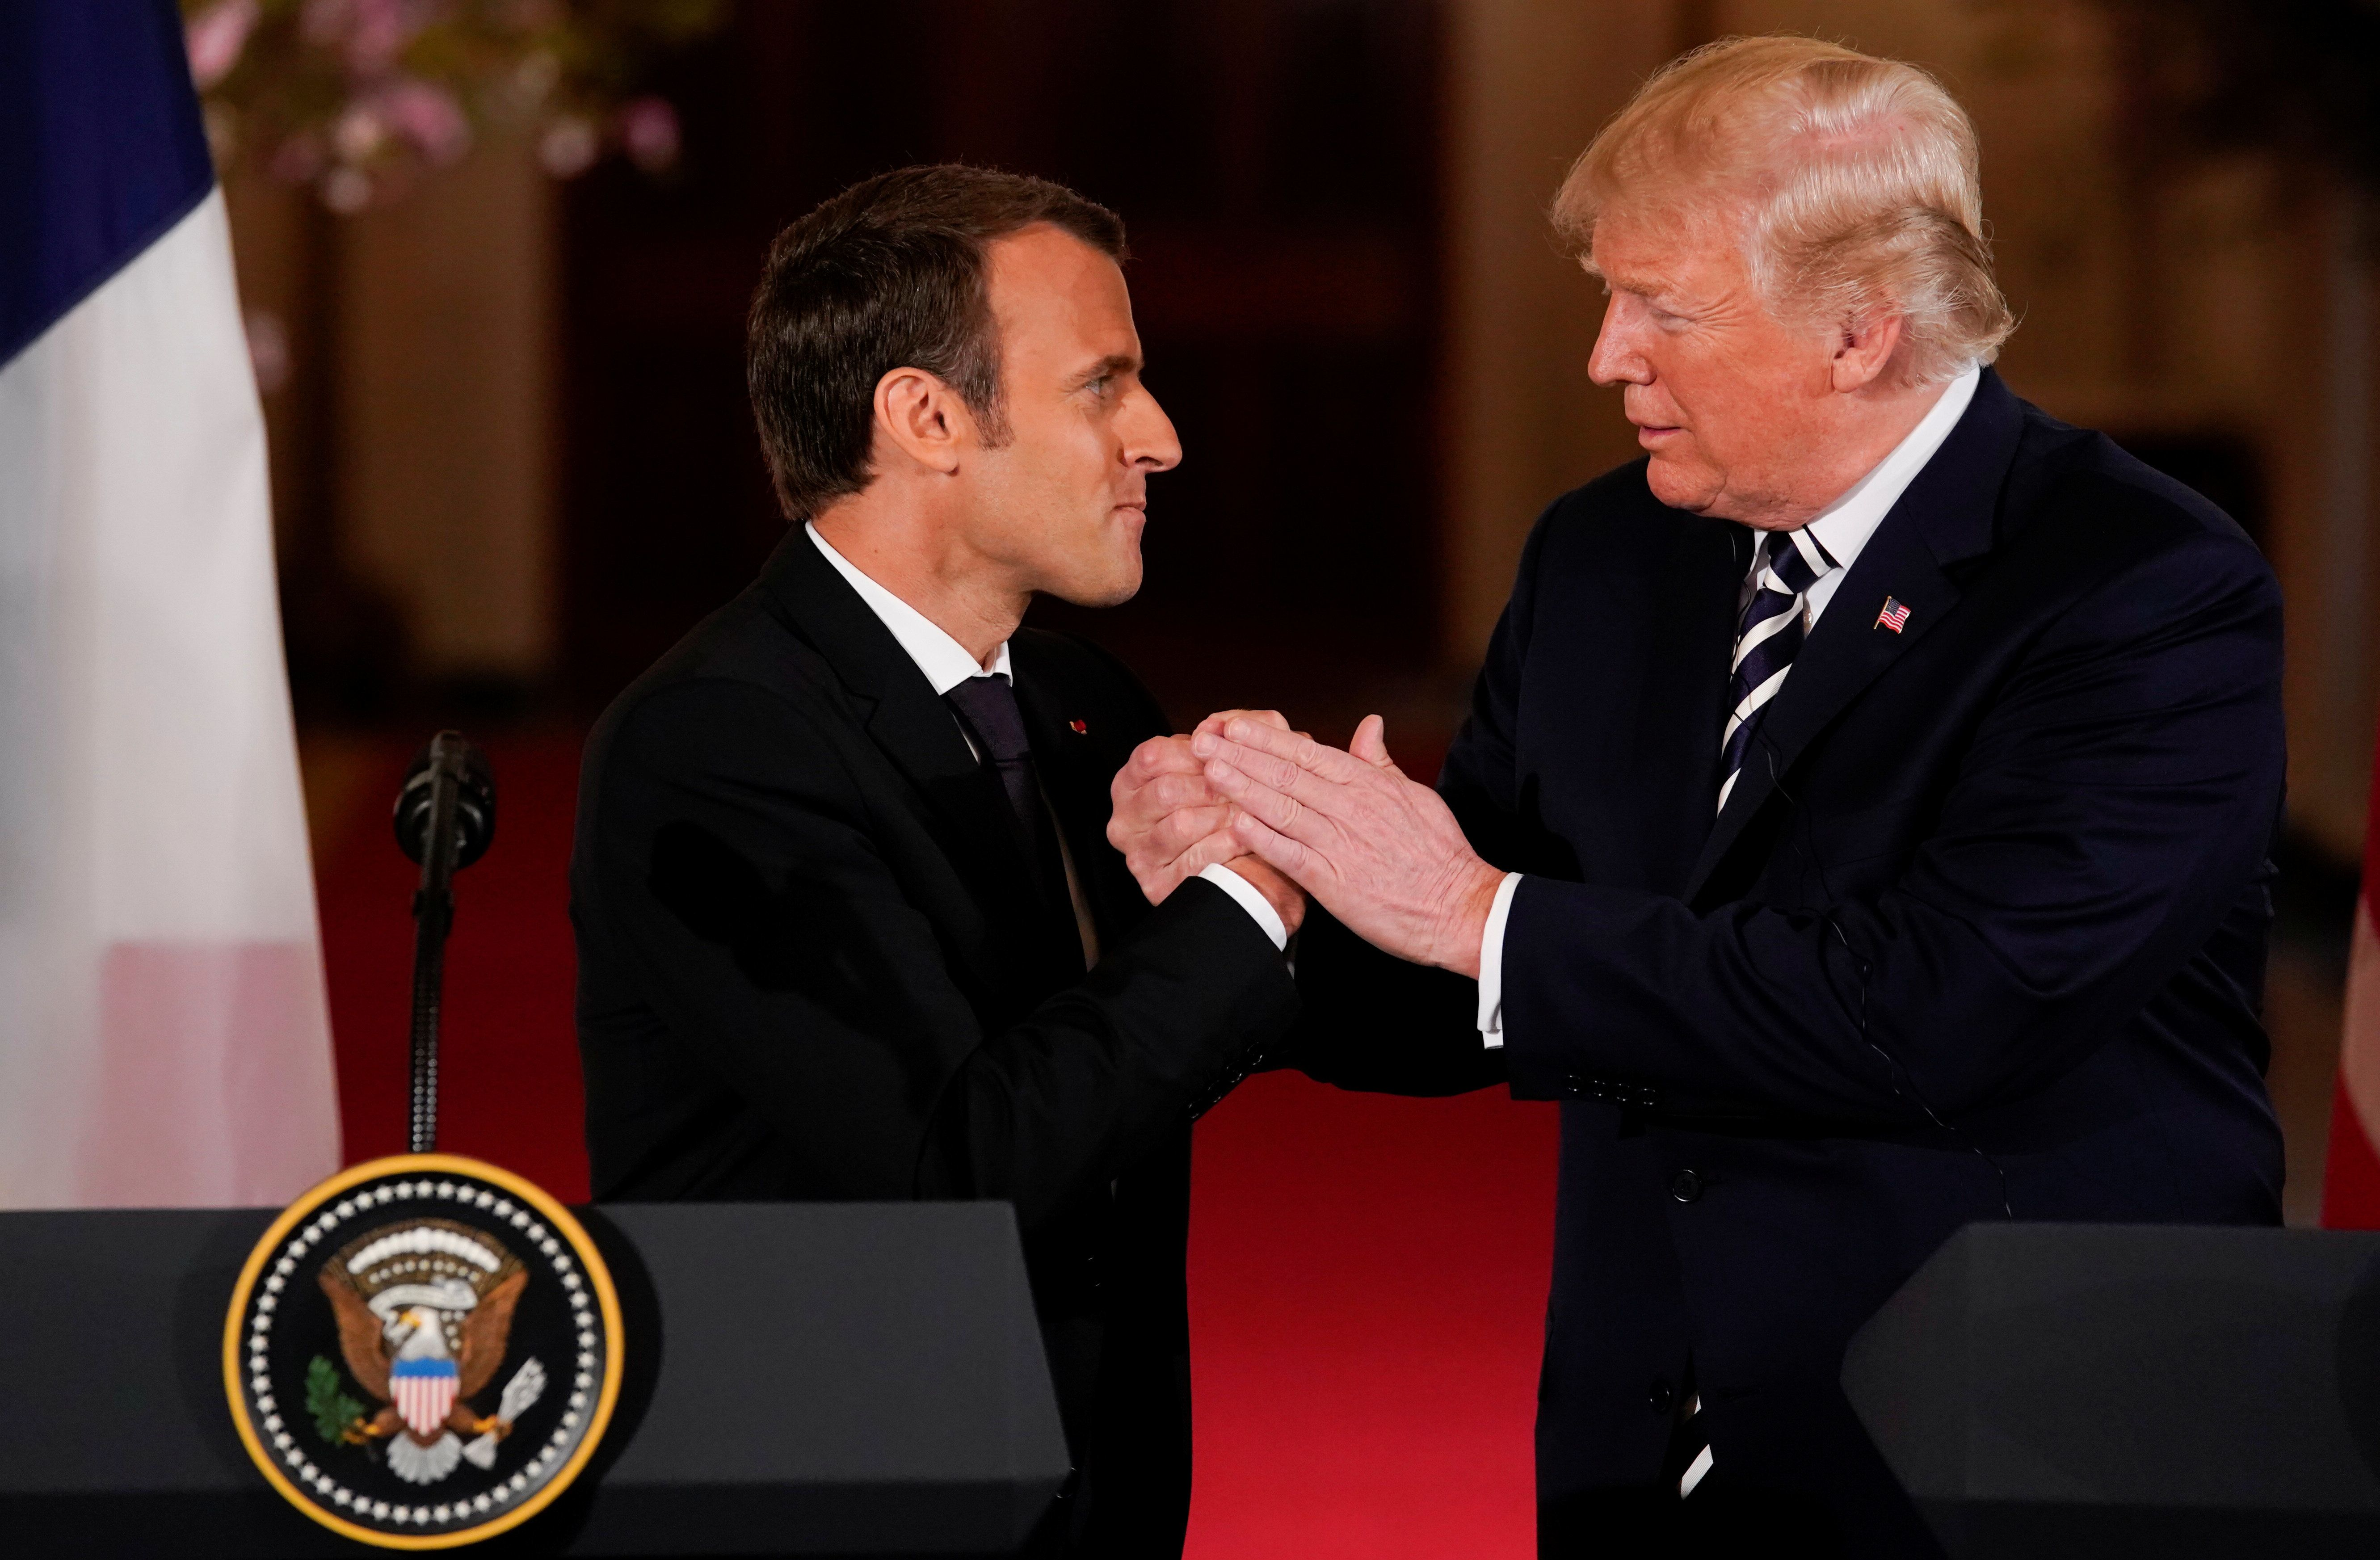 Trump Shared One Awkward Kiss And Handshake With Emmanuel